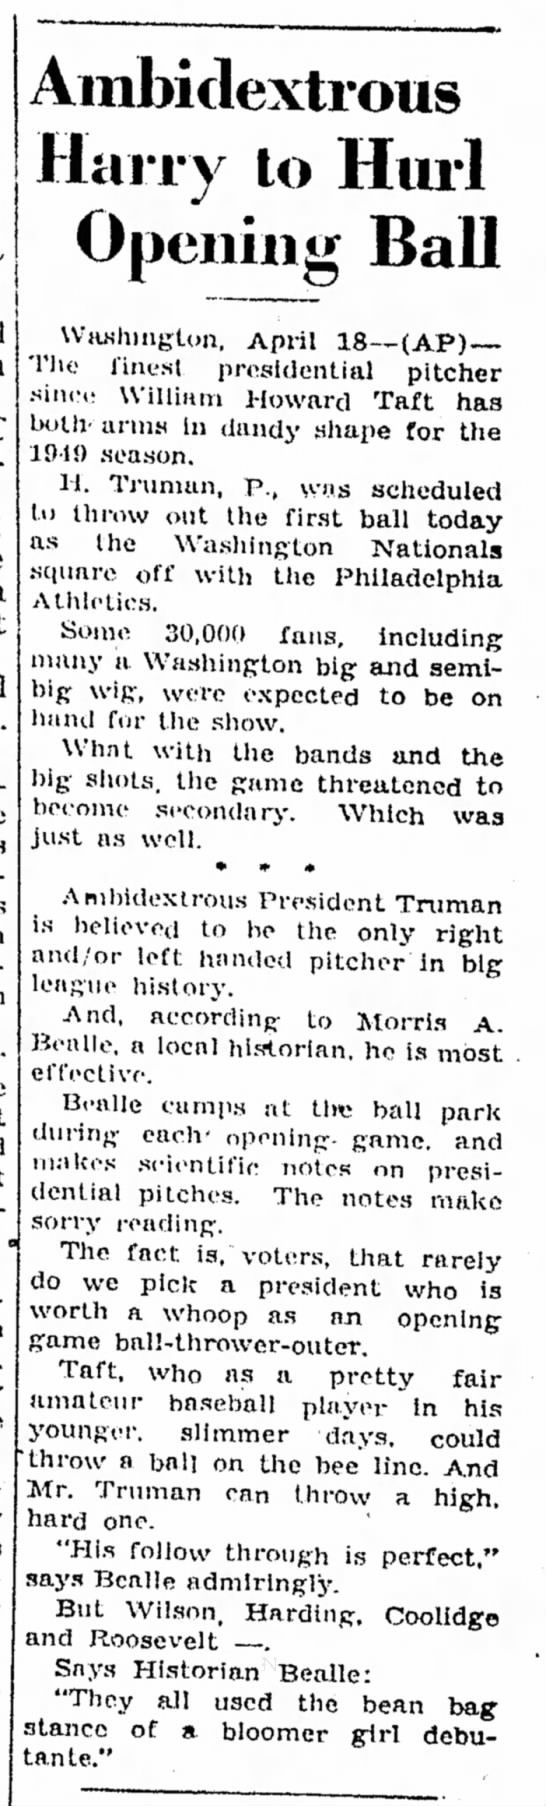 Ambidextrous Harry Truman to Hurl Opening Ball in 1949